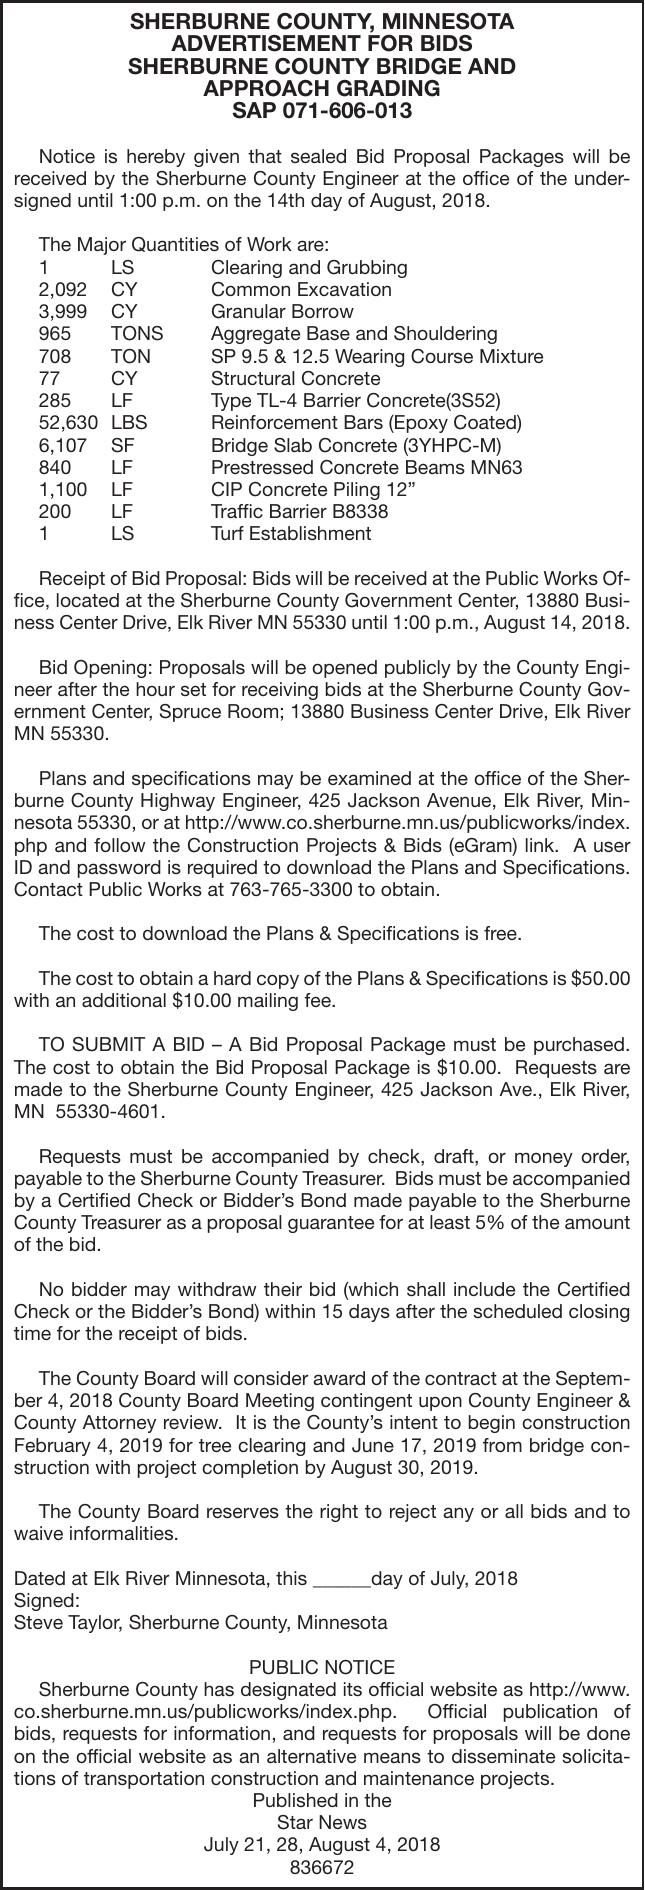 bridge and approach grading bids county